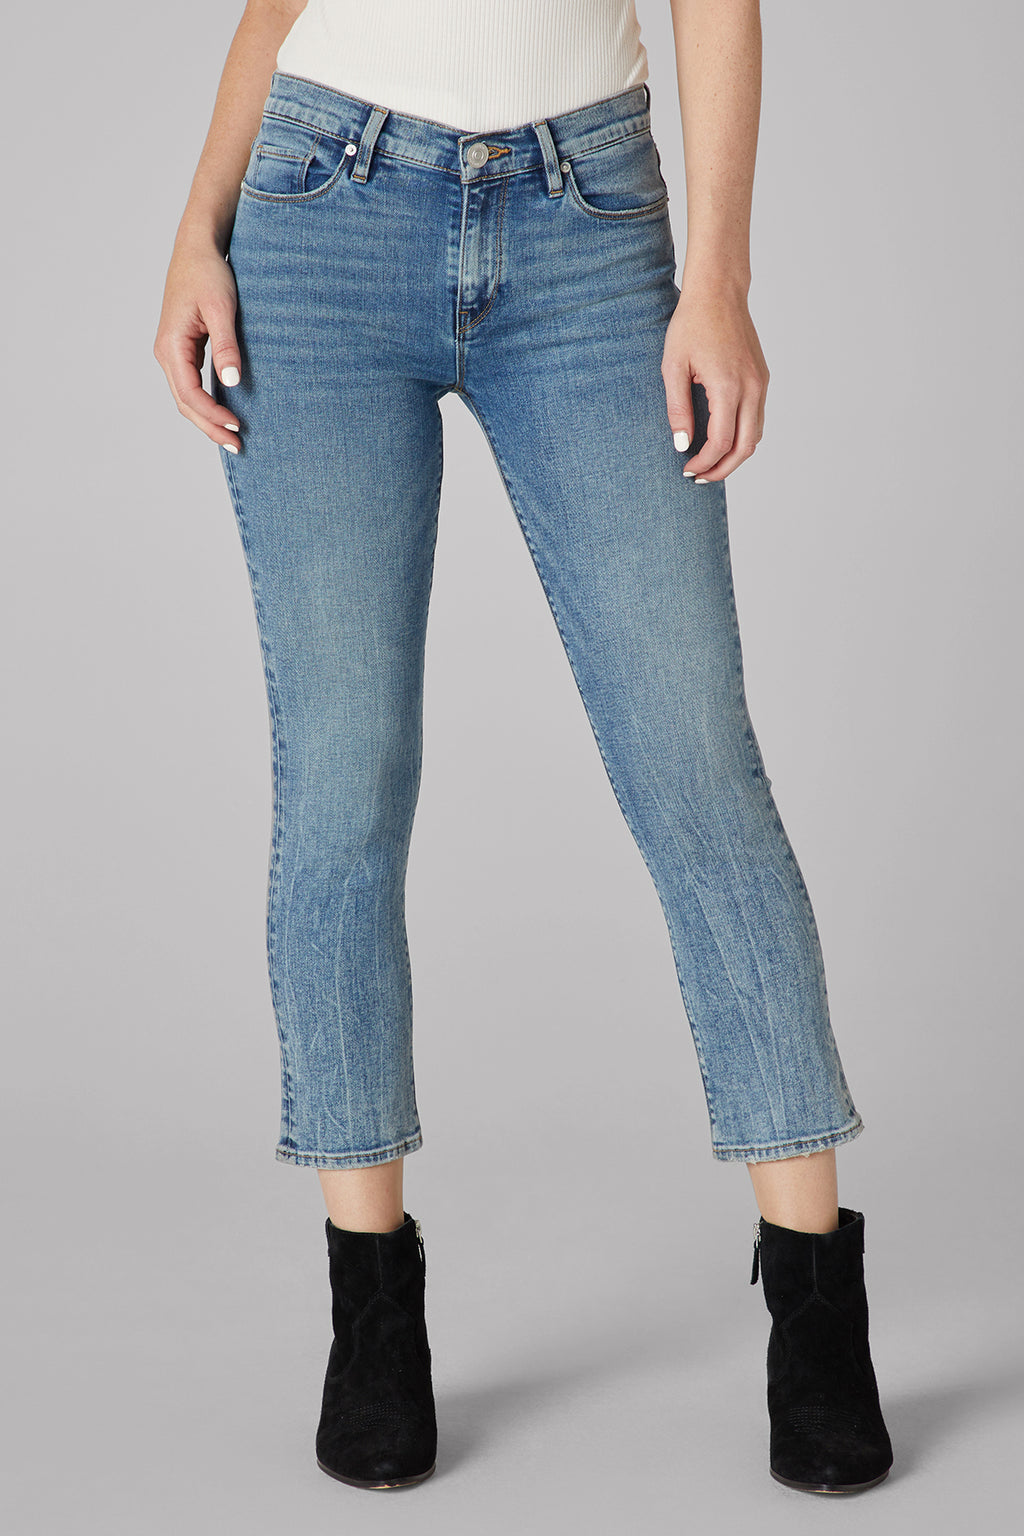 Nico Mid-Rise Straight Crop Jean